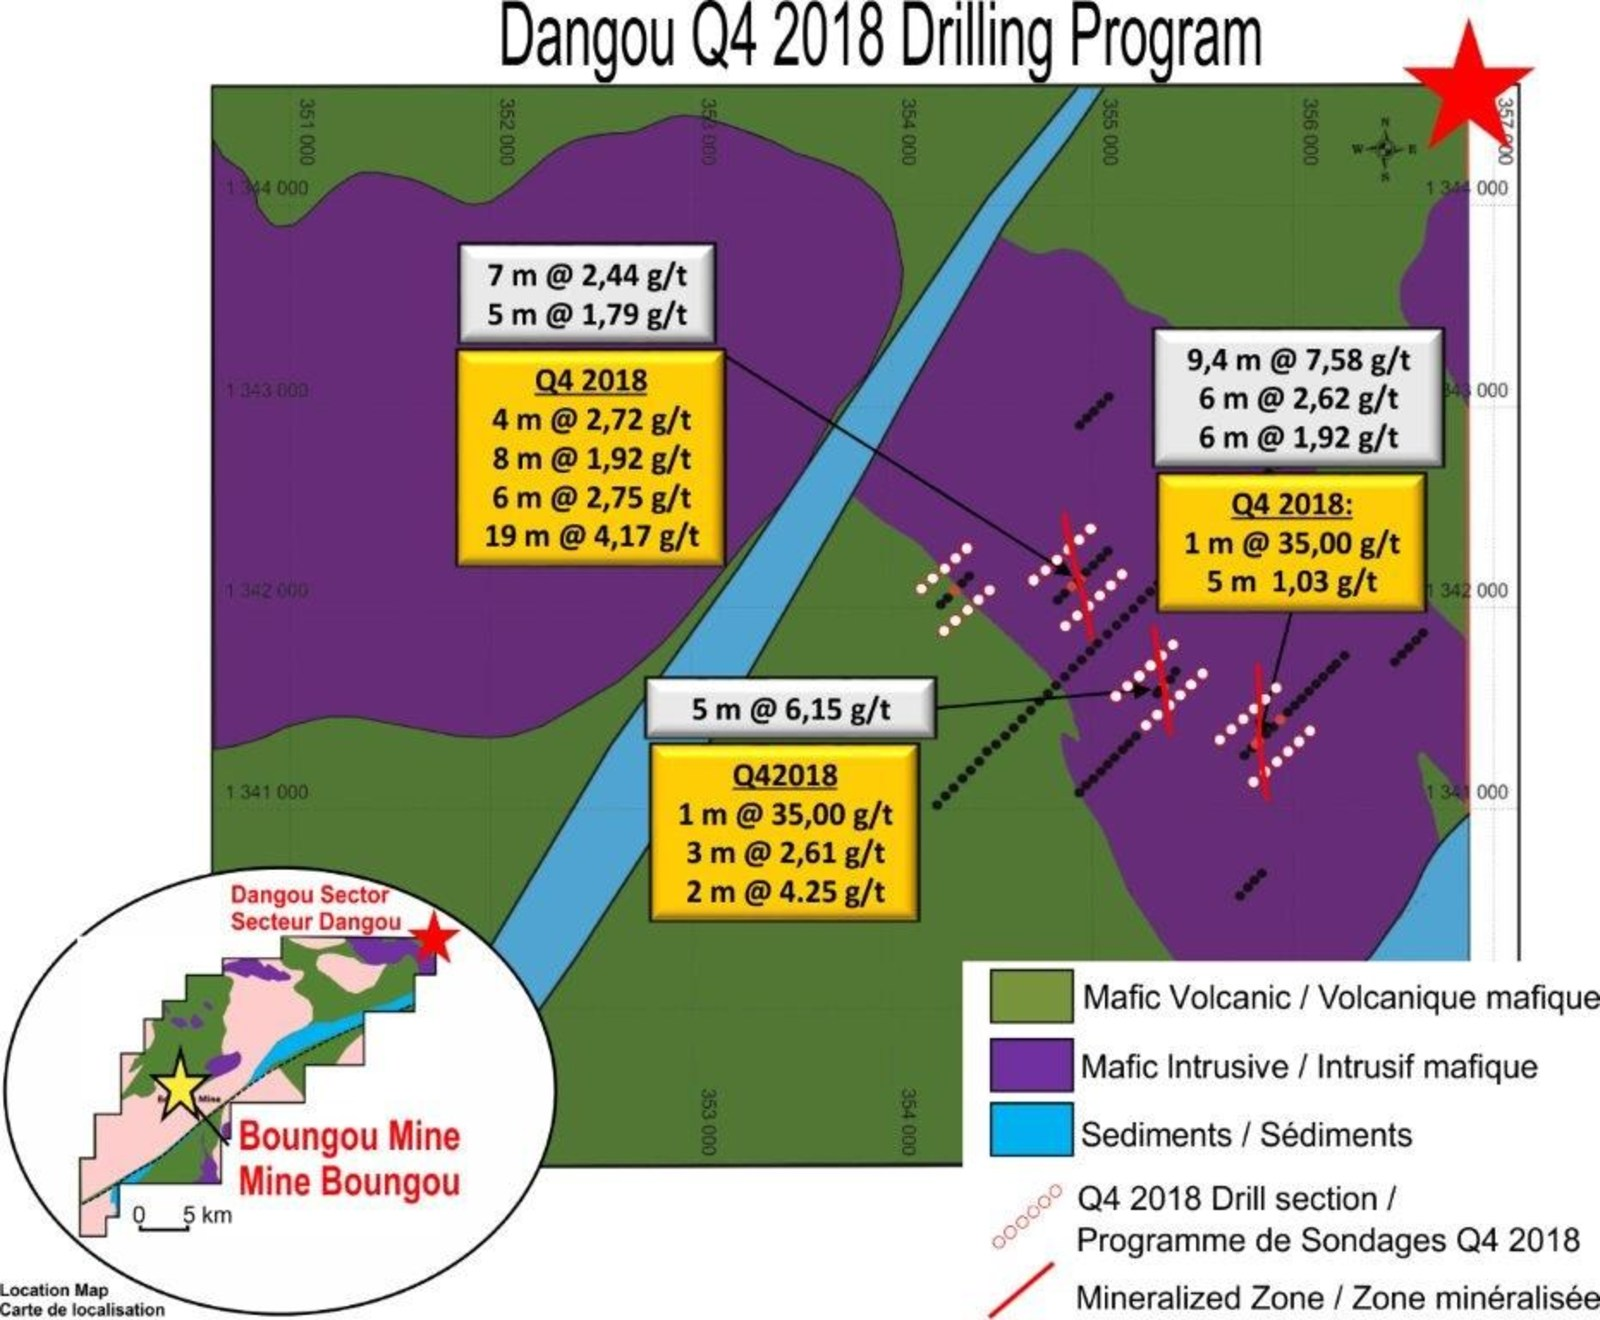 Dangou Q4 2018 Drilling Program